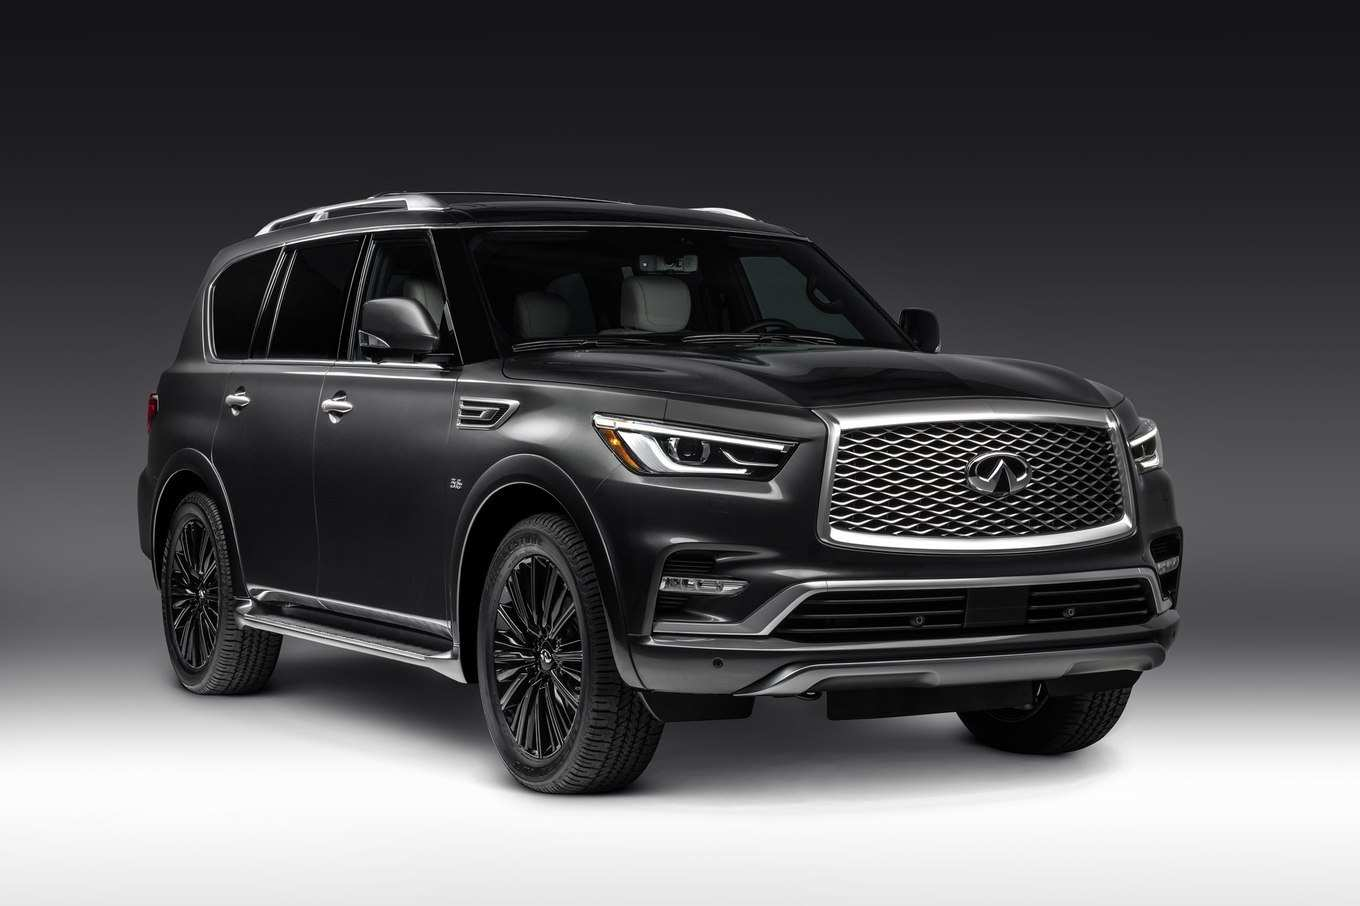 15 Best Review Best Infiniti Qx60 2019 Price Picture Performance and New Engine with Best Infiniti Qx60 2019 Price Picture